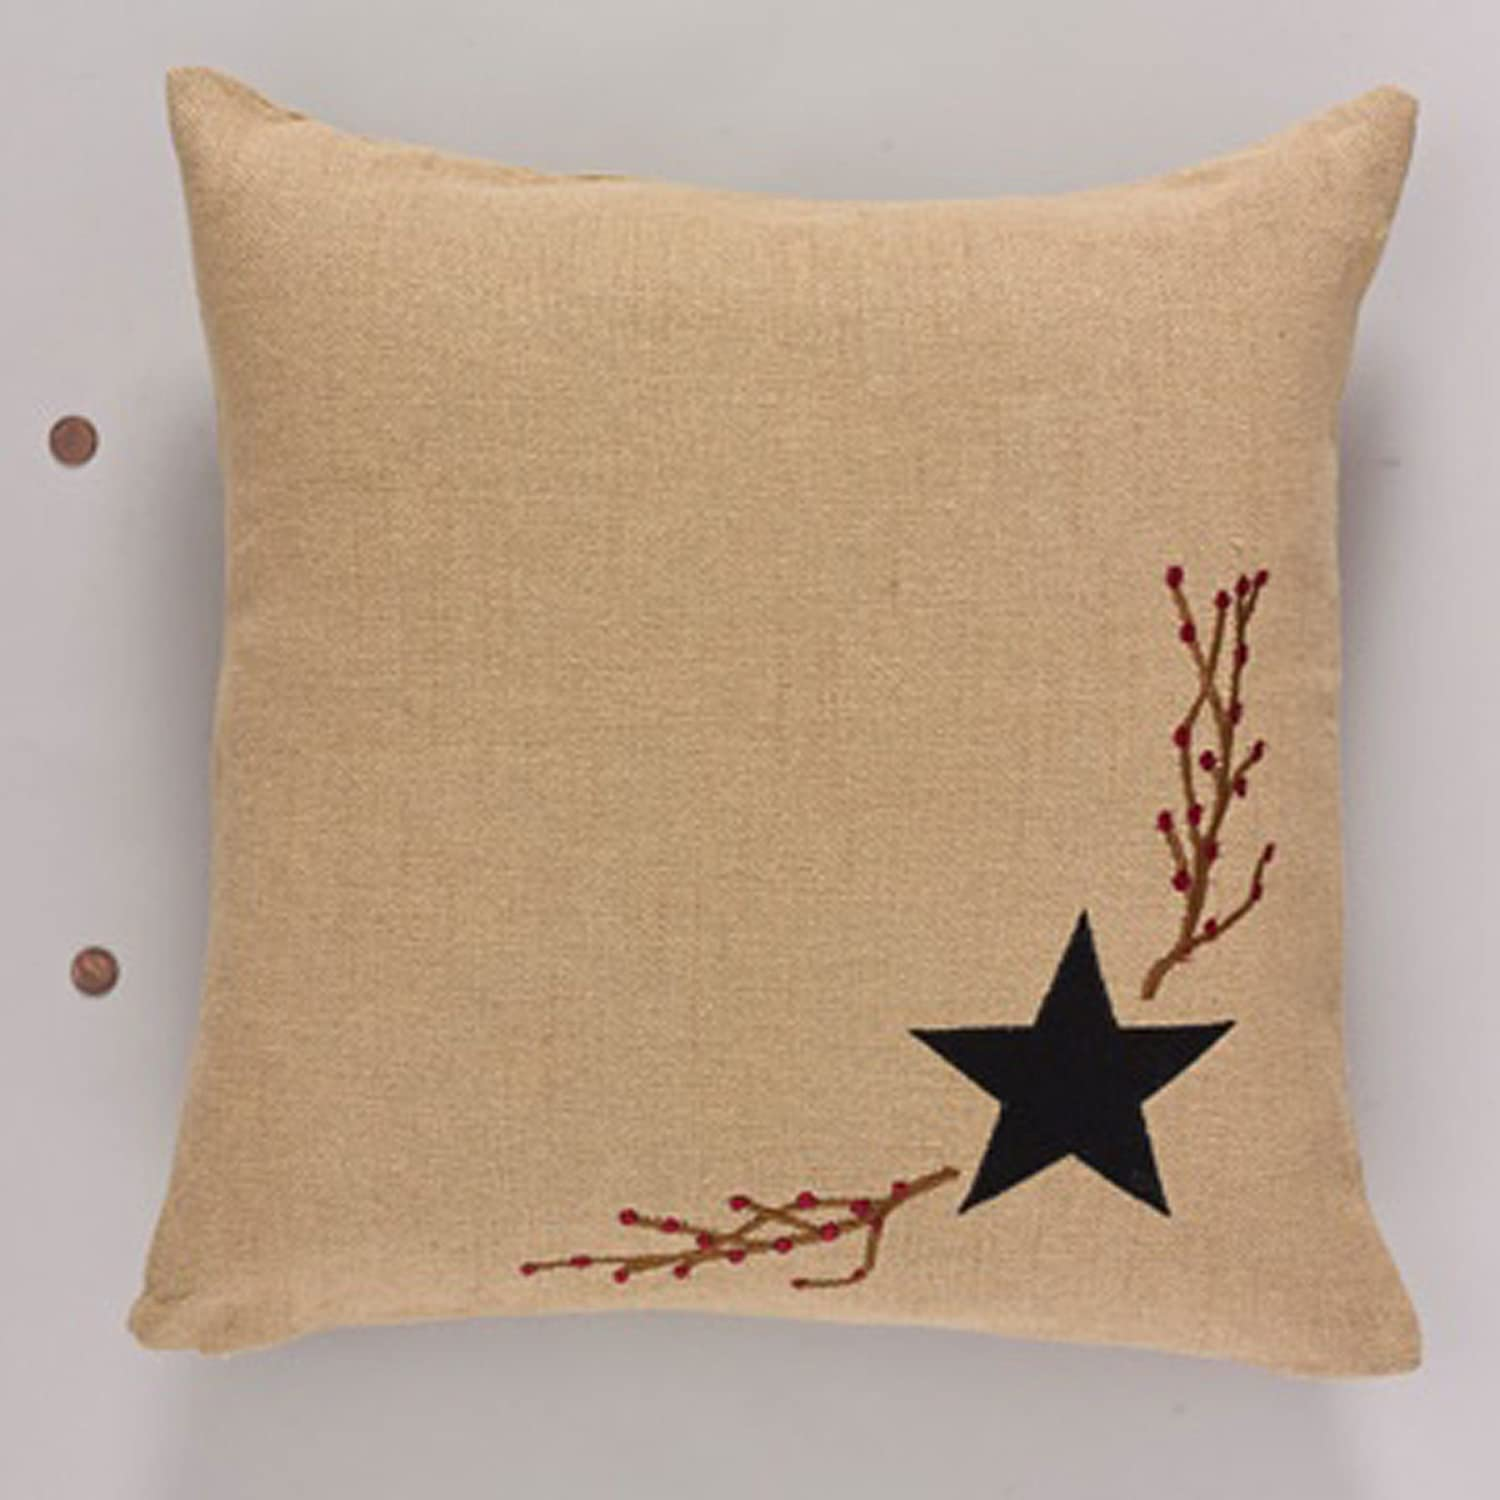 Park Designs Burlap Star Decorative Pillow